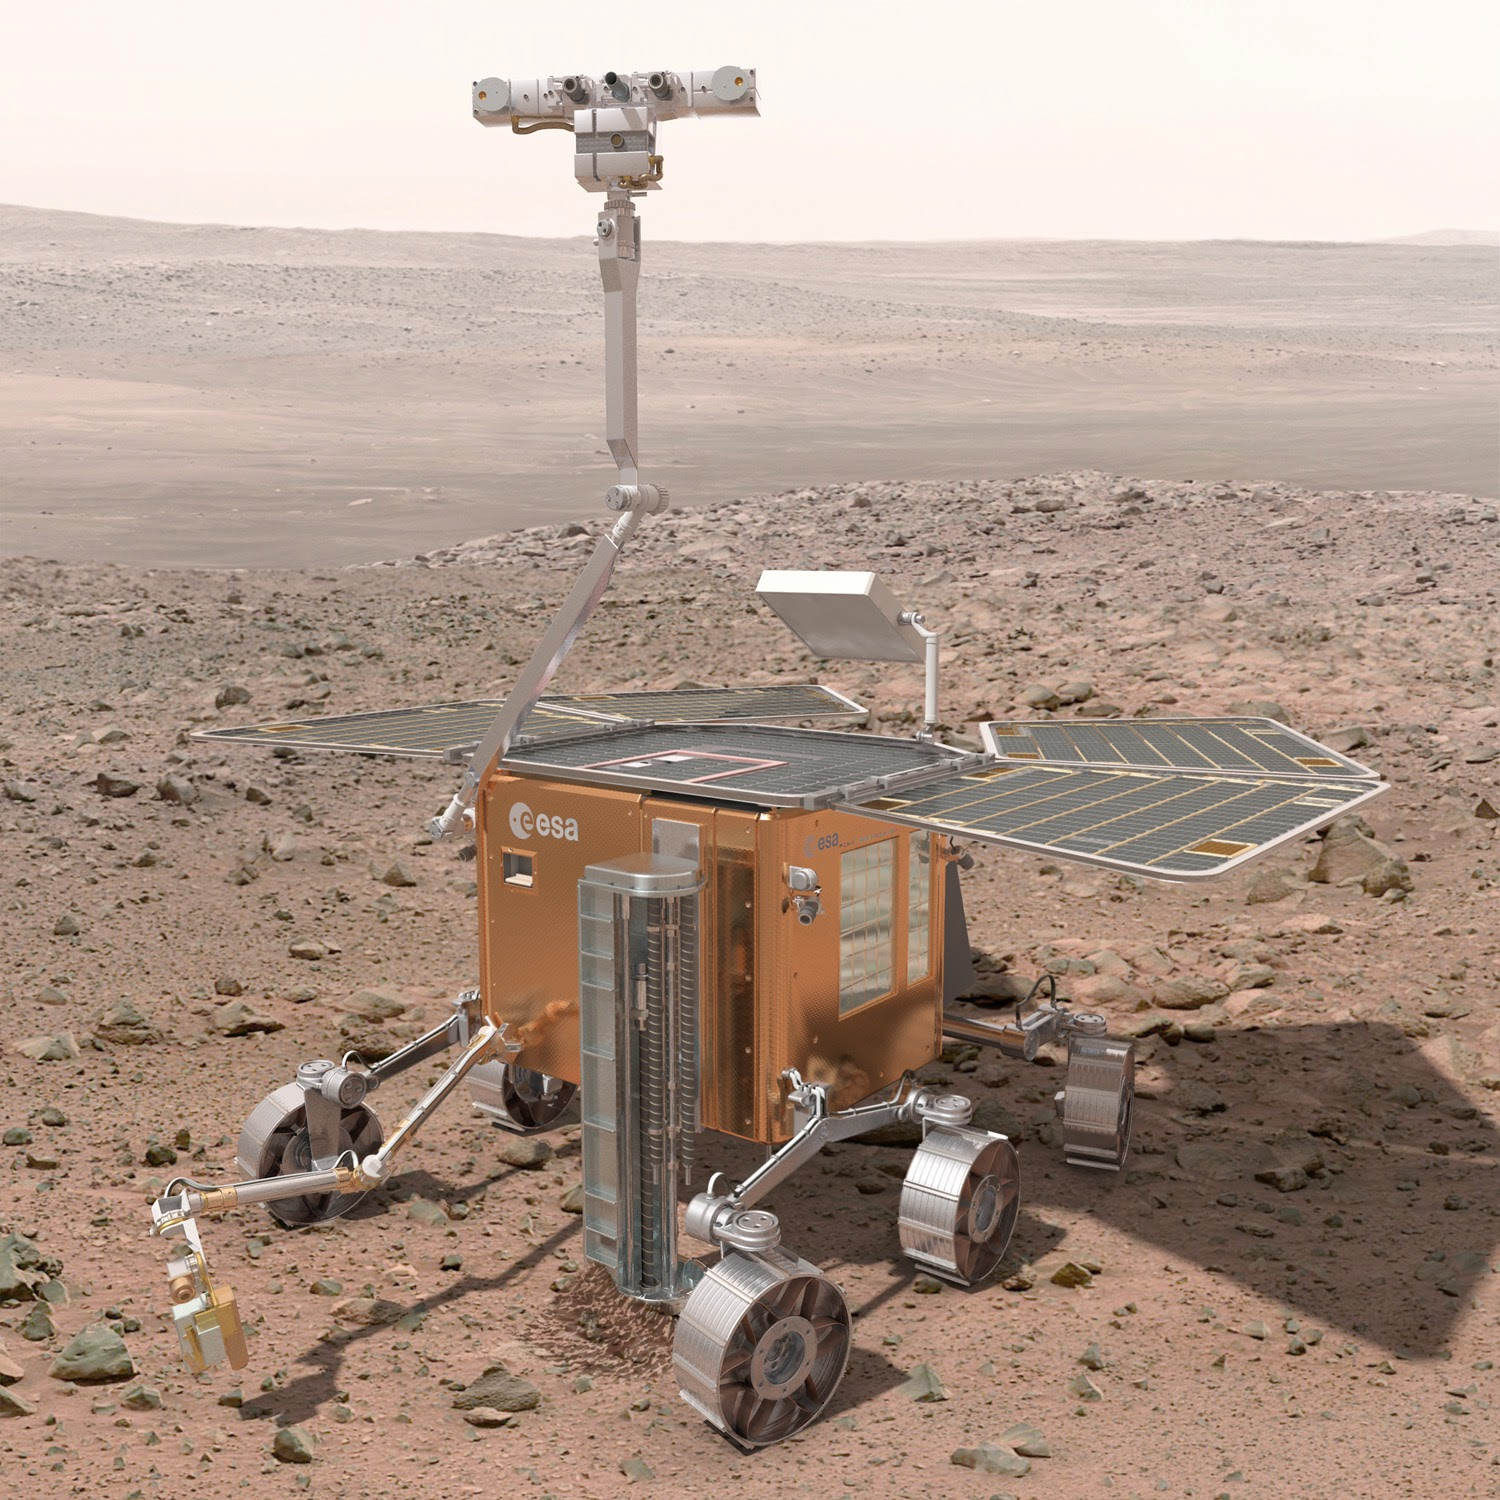 mars rover 2020 esa - photo #25